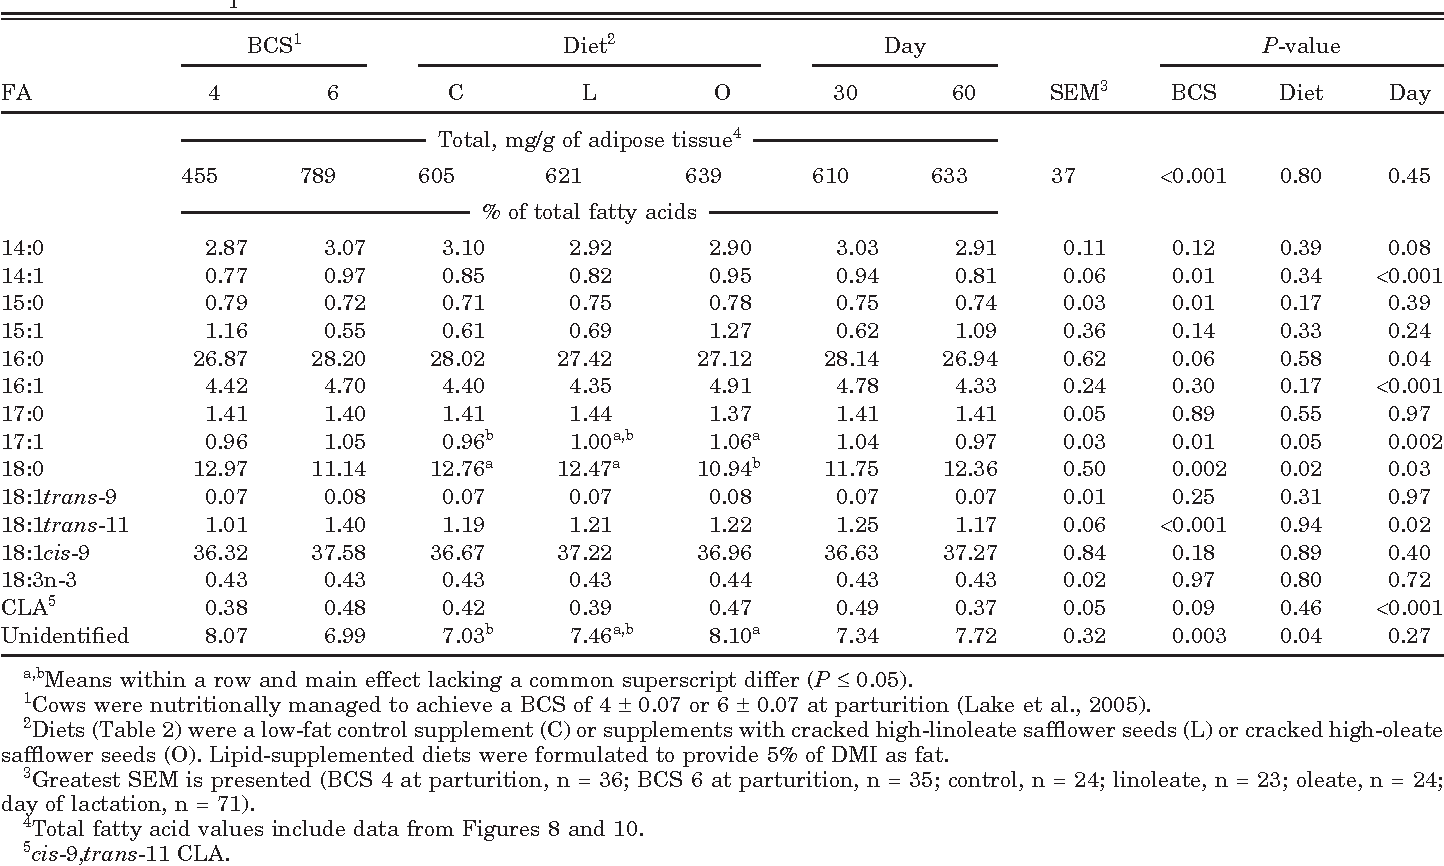 Table 8. Main effects of BCS at parturition, dietary treatment, and day of lactation on adipose tissue fatty acid profile of beef cows in Exp. 2